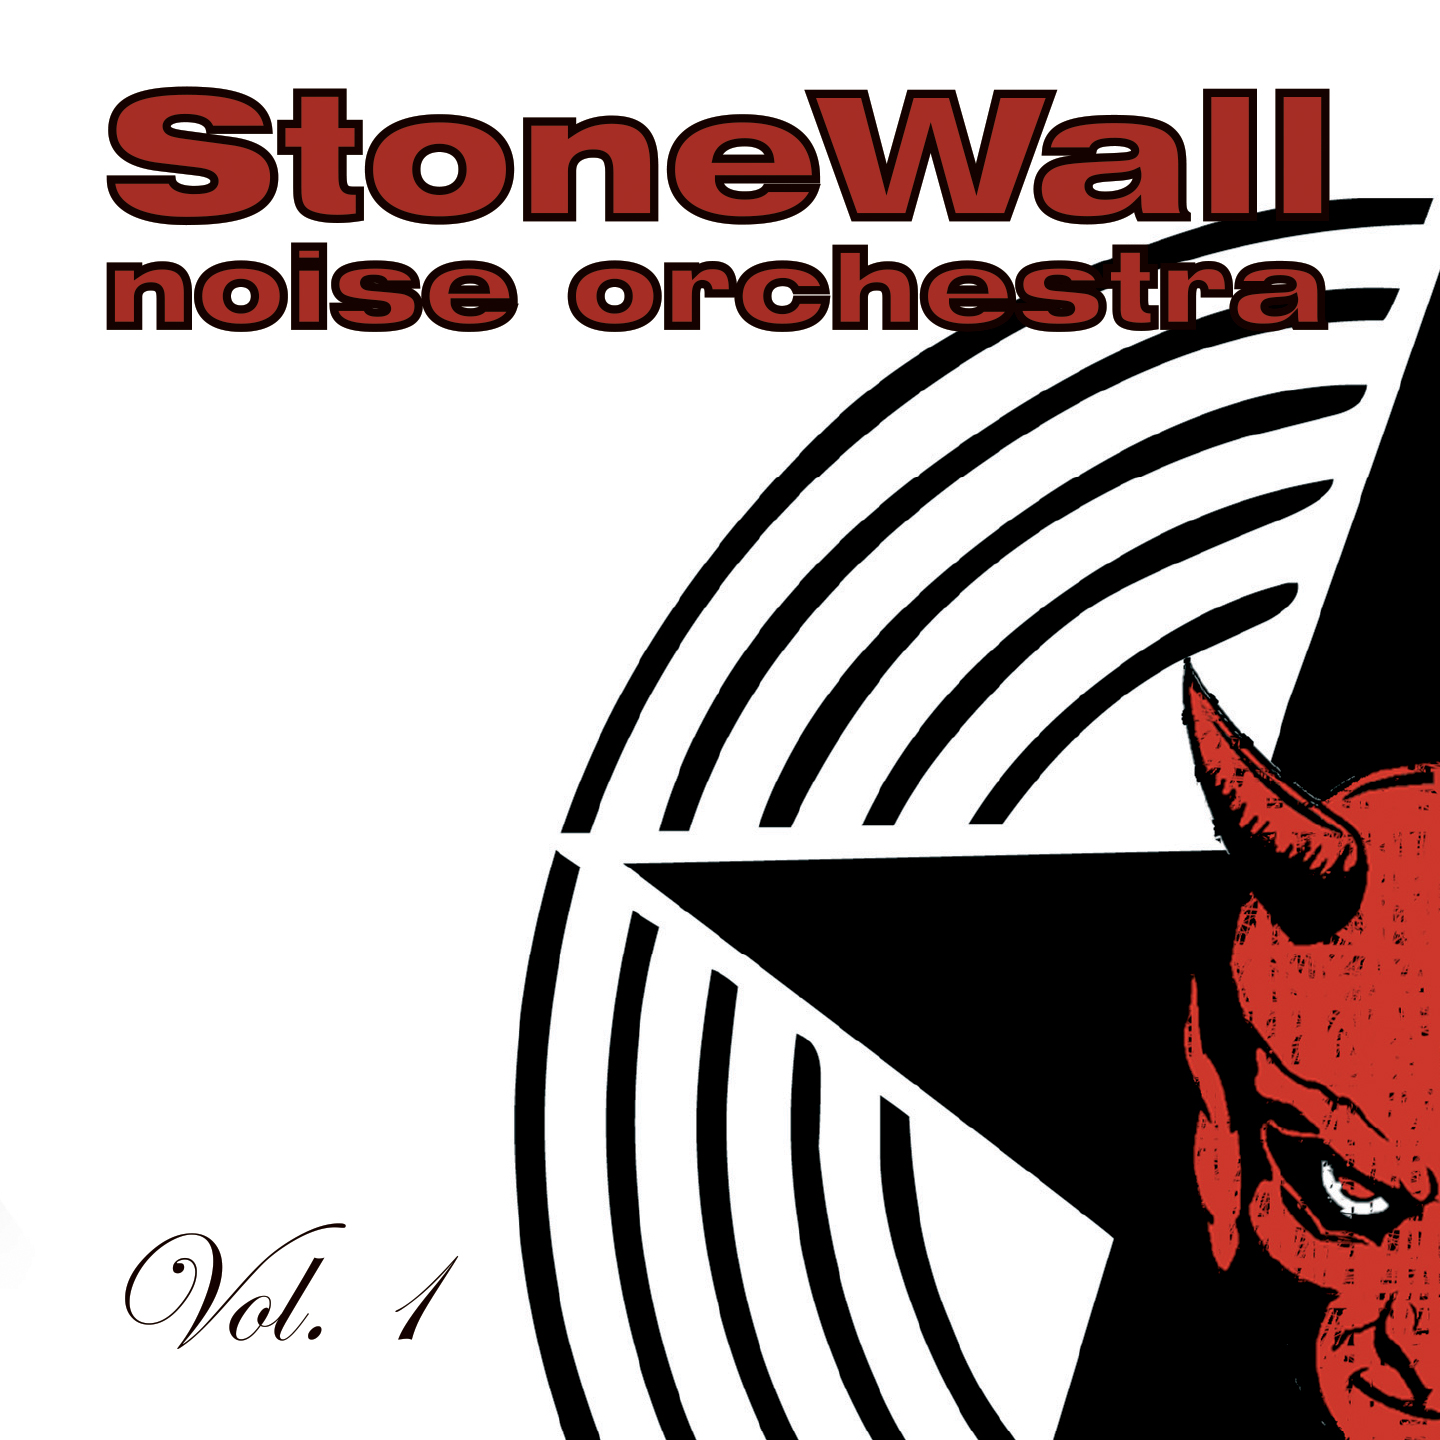 stonewall noise orchestra vol. 1